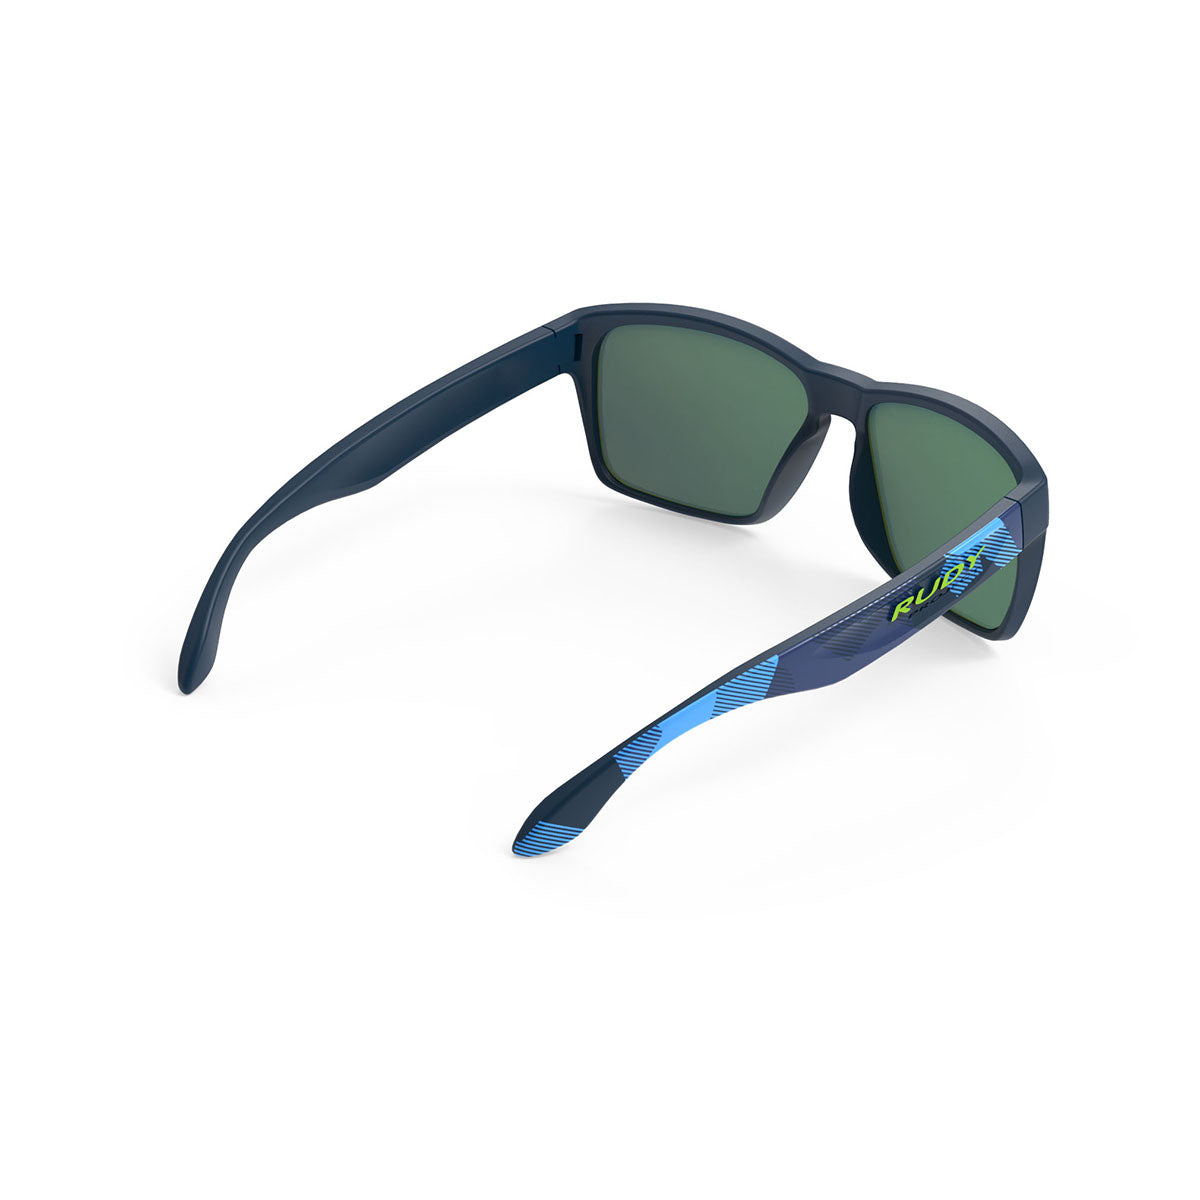 Rudy Project - Spinhawk - frame color: Neo Camo Blue - lens color: Multilaser Blue - Bumper Color:  - photo angle: Top Back Angle Variant Hover Image